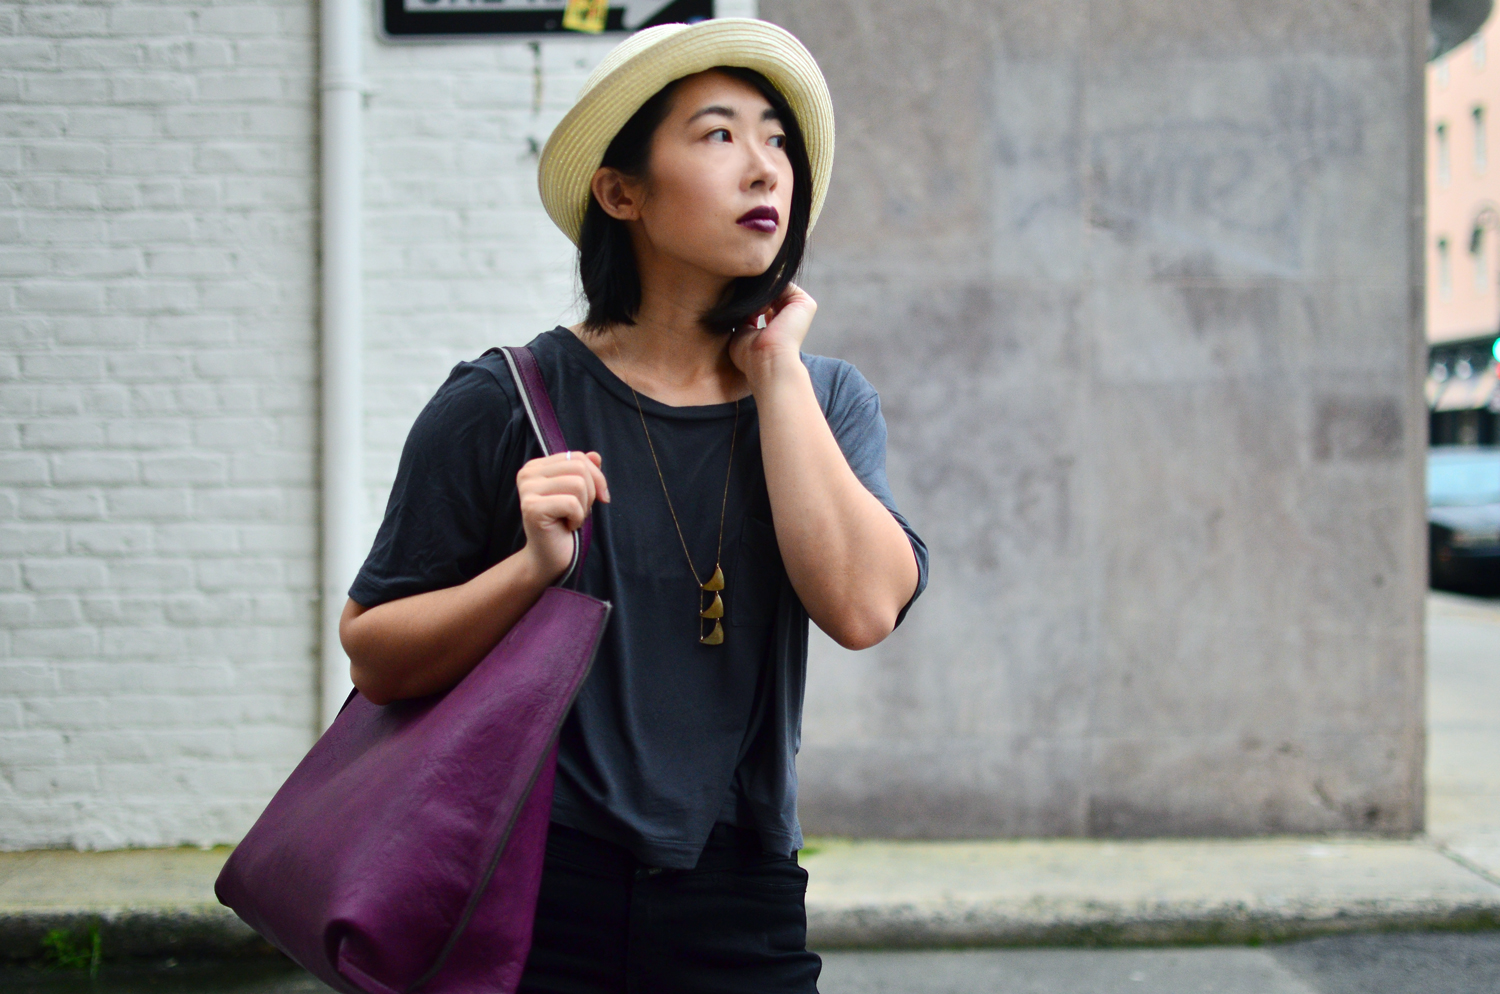 Ally looking towards the road. Wearing Aritzia fedora hat, Crafts & Love necklace, Urban Outfitters leather tote, and Gap slub tee.